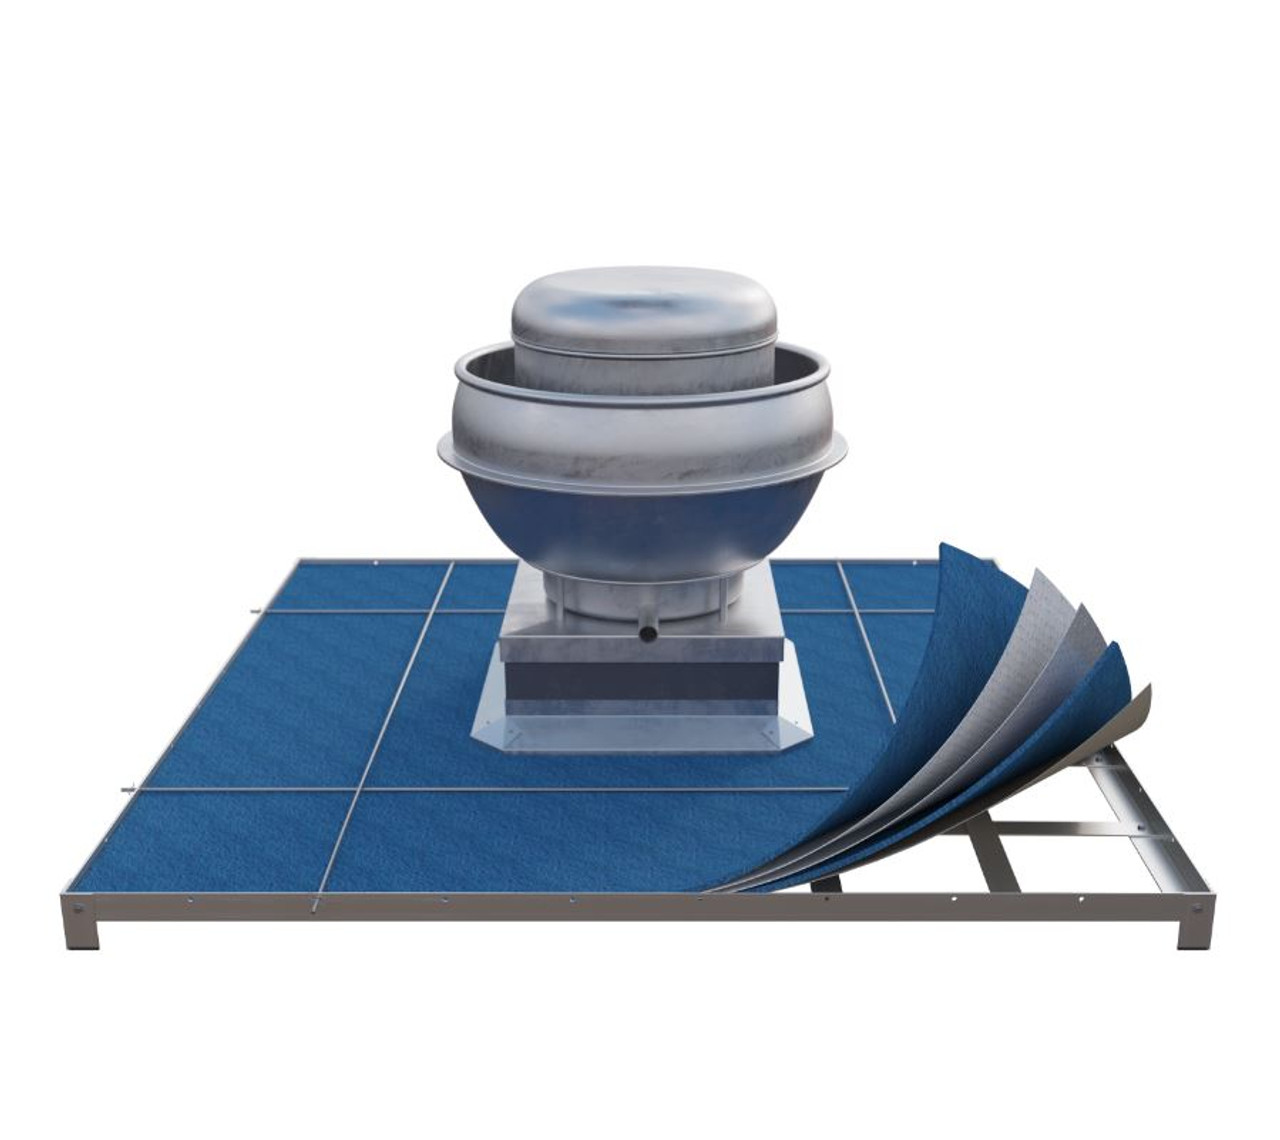 Roof Guardian: five-layered grease filtration system